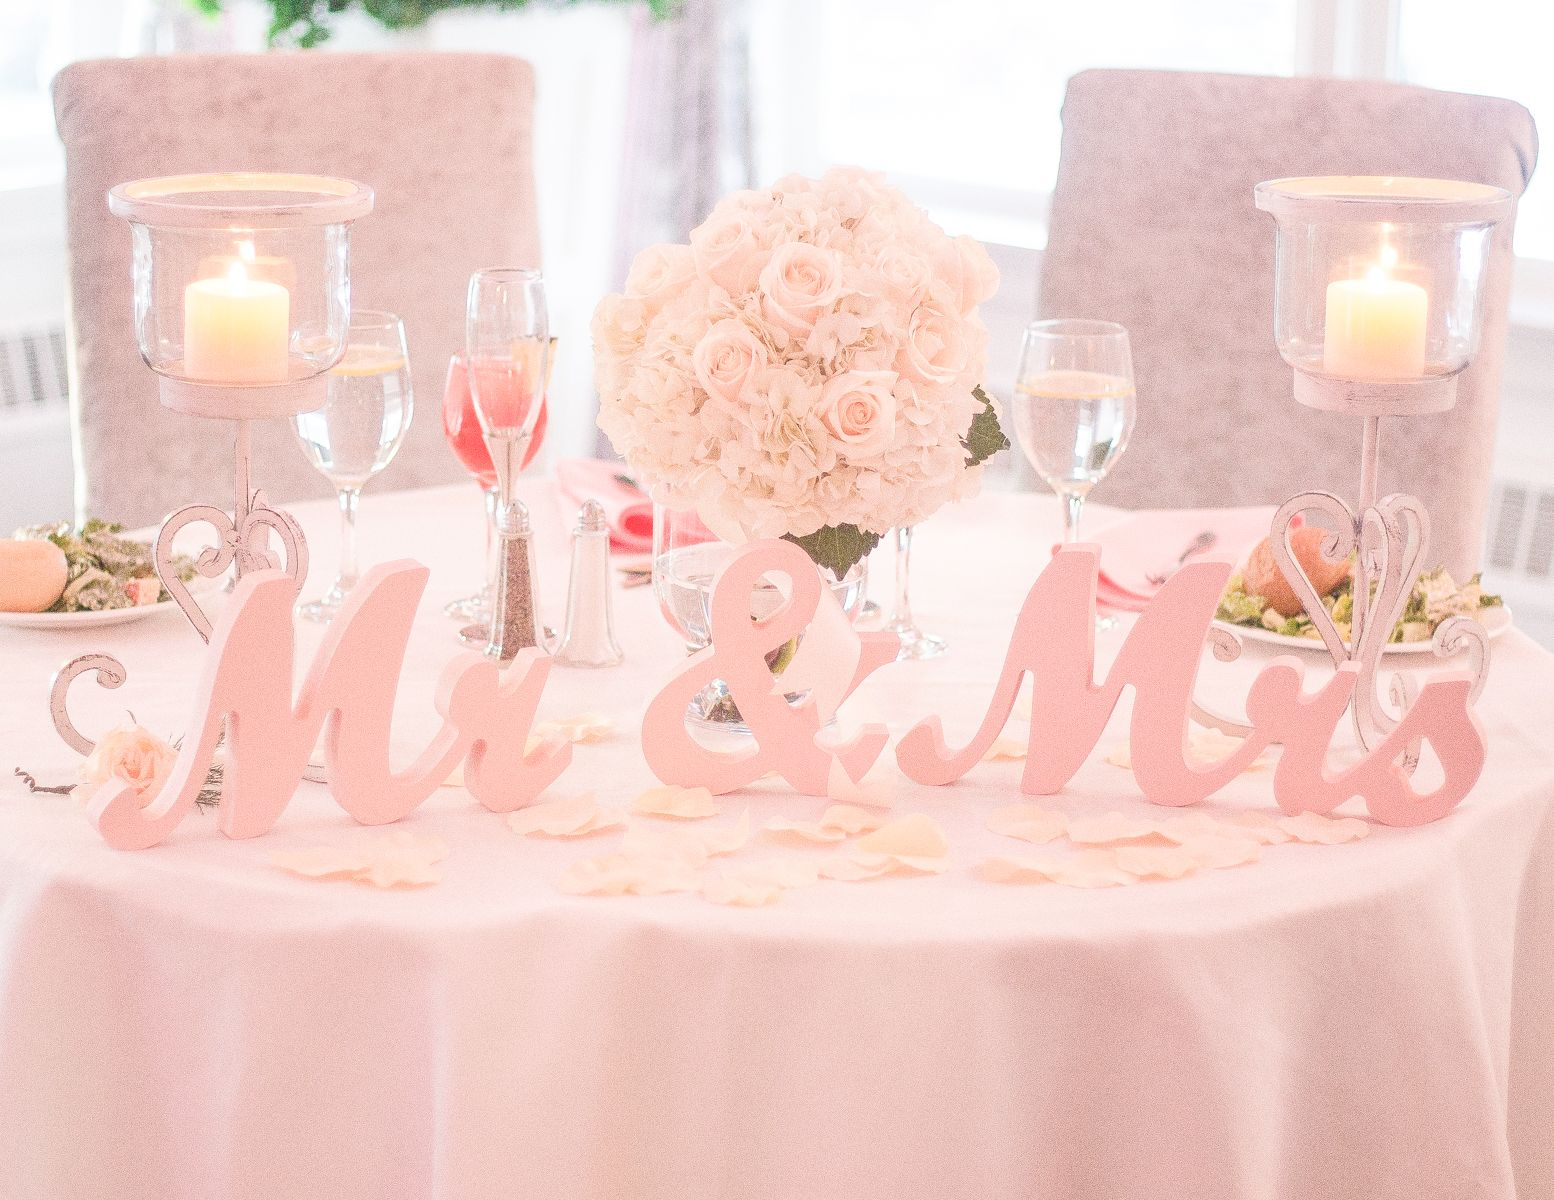 Mr & Mrs Table Signs for the Wedding Sweetheart Table or Bridal ...